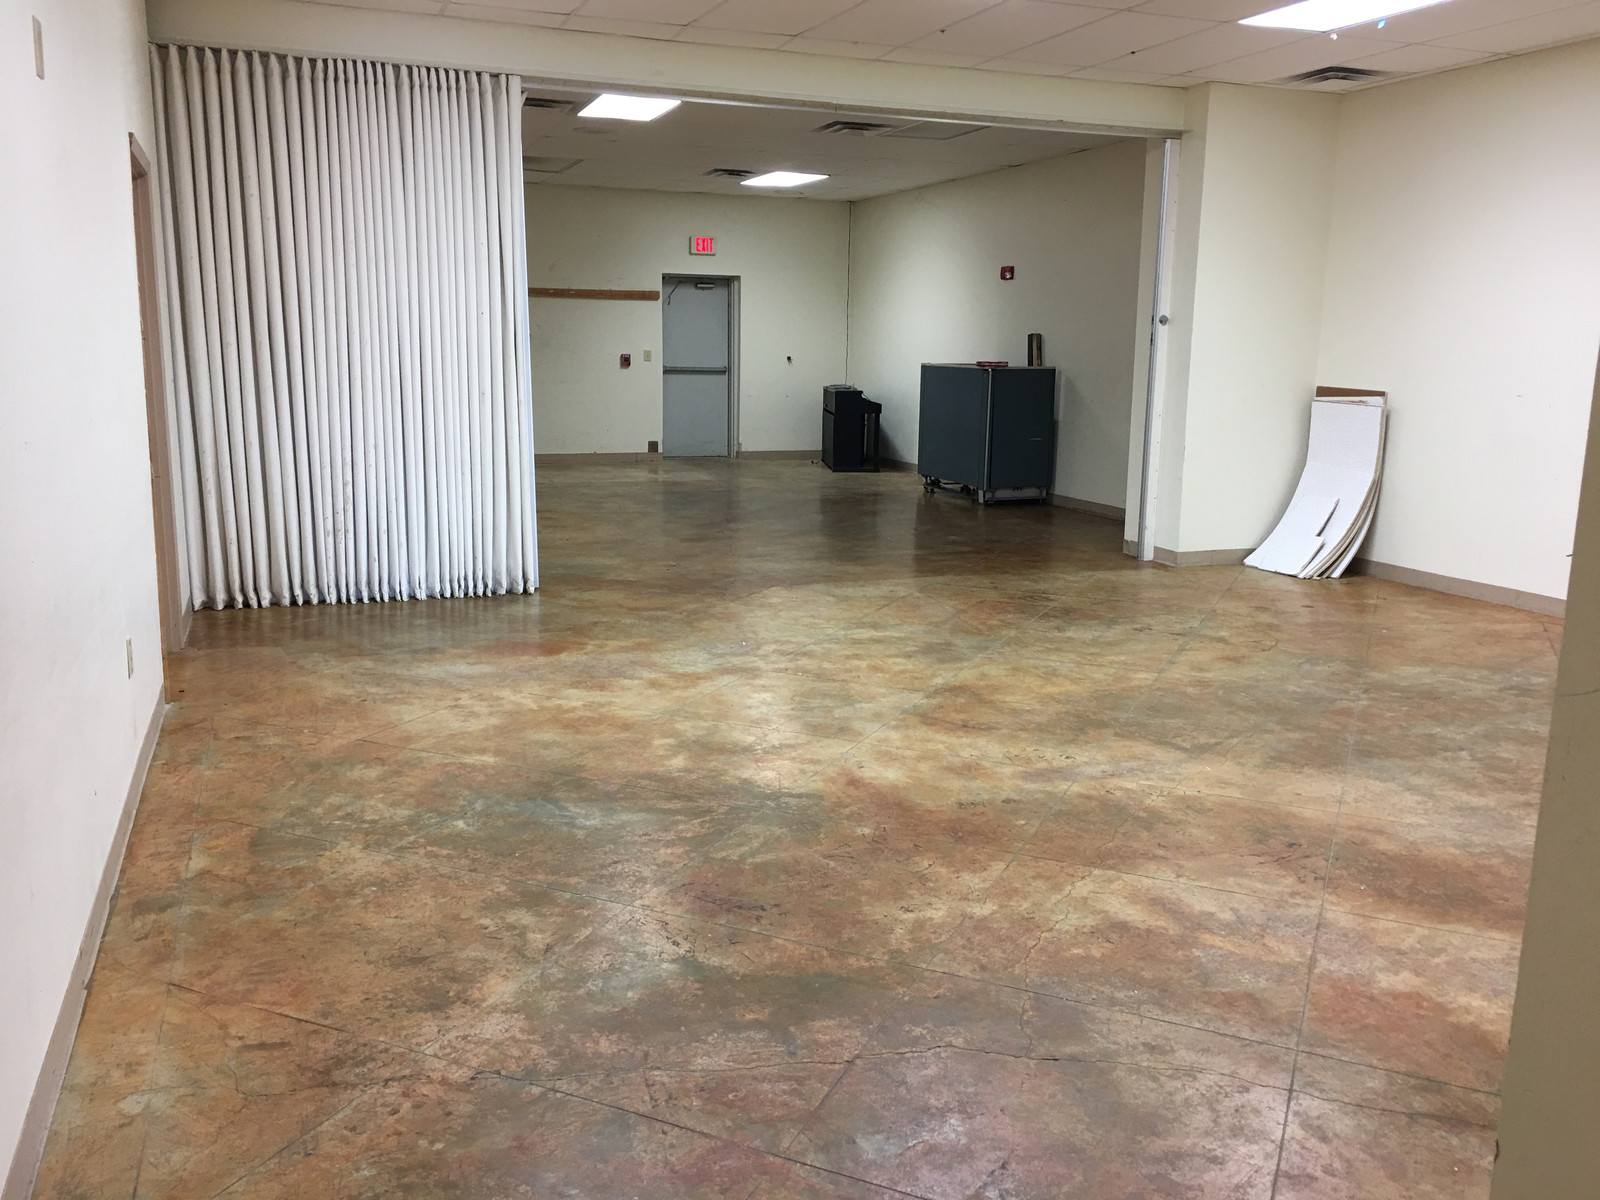 IPHC Extension Loan Fund, Bethany, OK